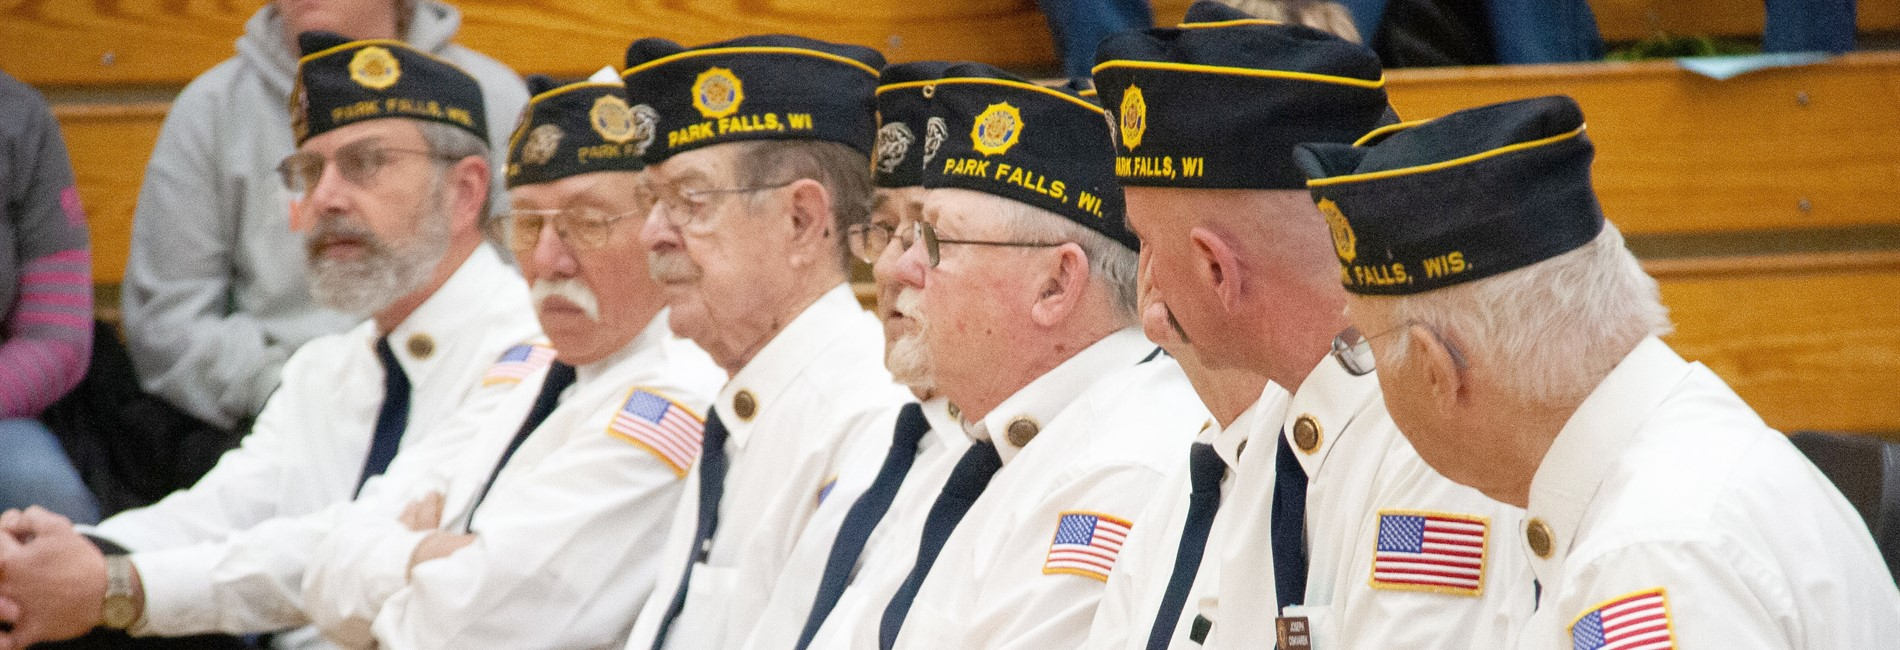 Veterans who took part in the Chequamegon School District Veteran's Day event